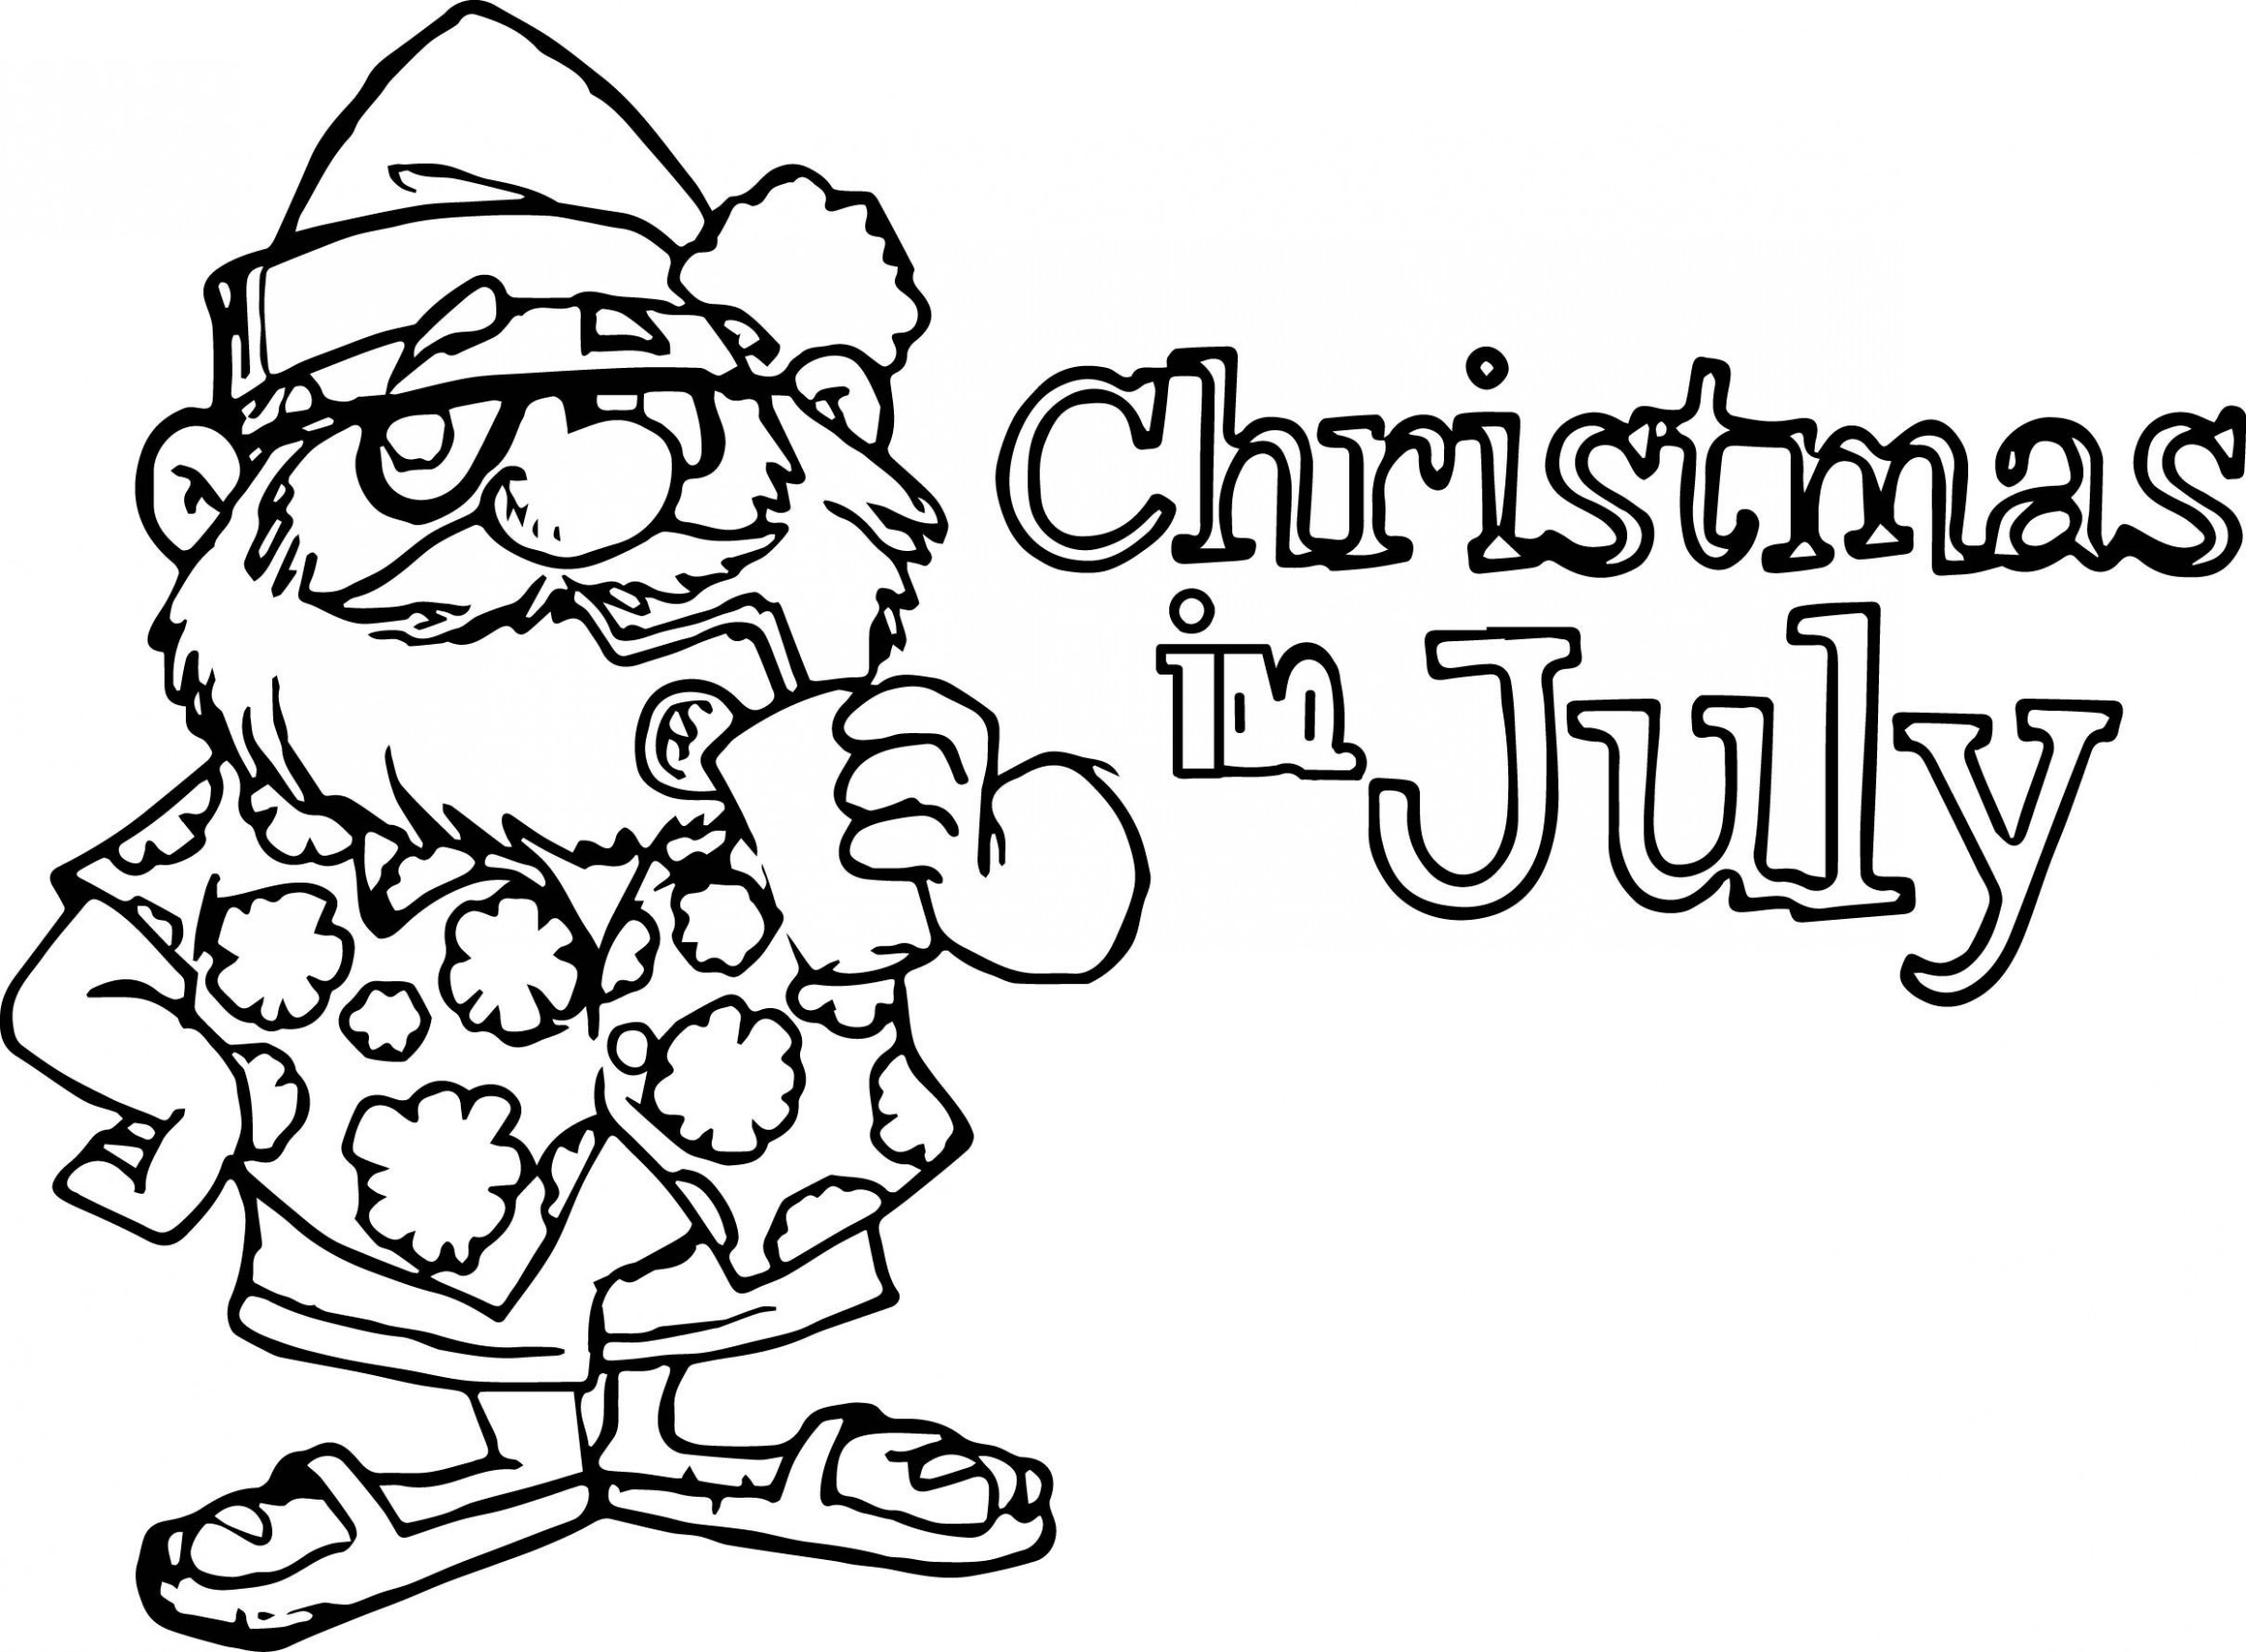 18th Of July Christmas In July Coloring Page | Wecoloringpage ..